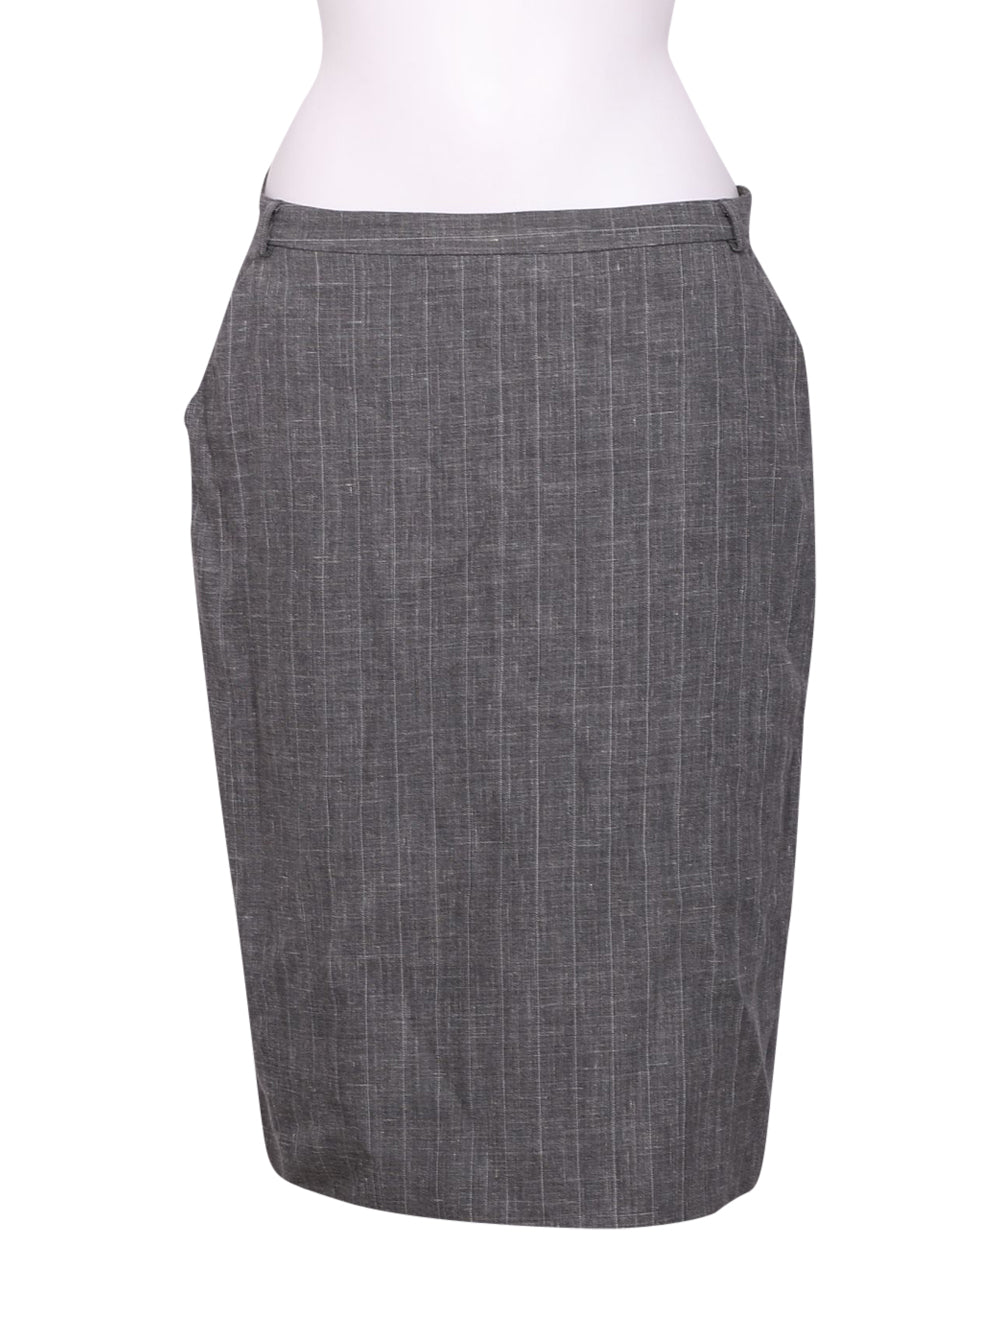 Front photo of Preloved Max Mara Grey Woman's skirt - size 16/XXL